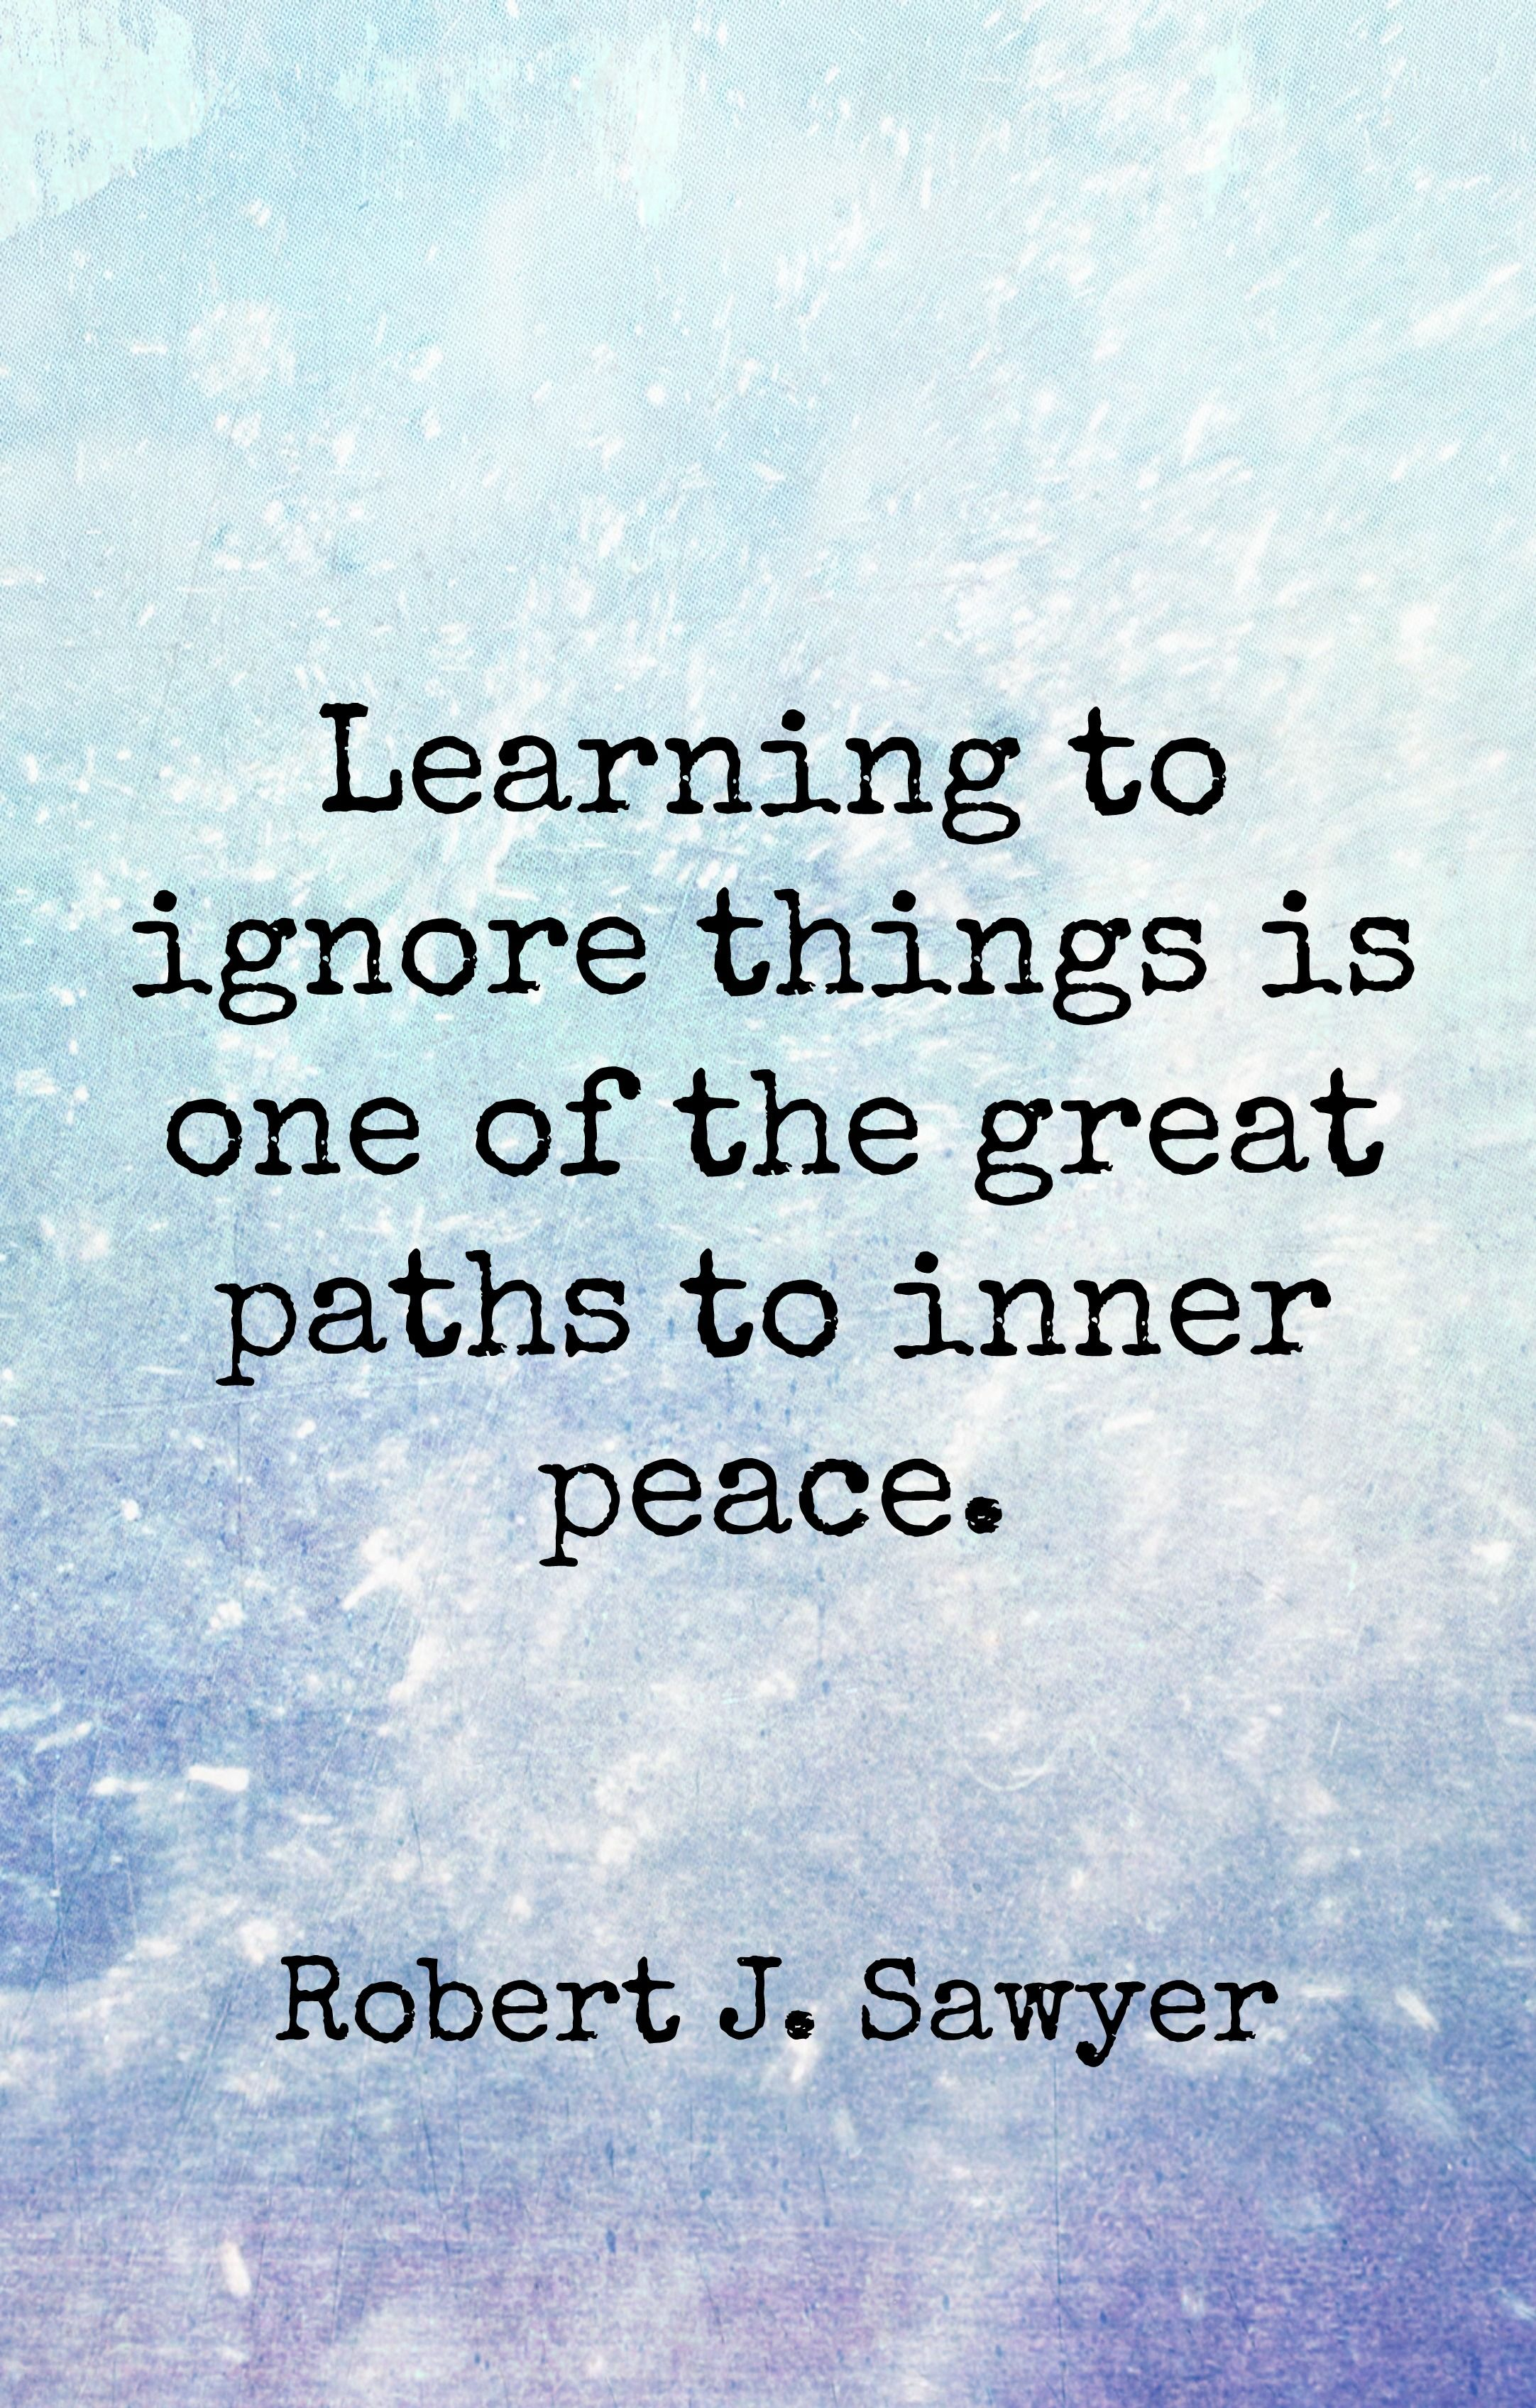 Love Peace Quotes Learning To Ignore Things Is One Of The Great Paths To Inner Peace